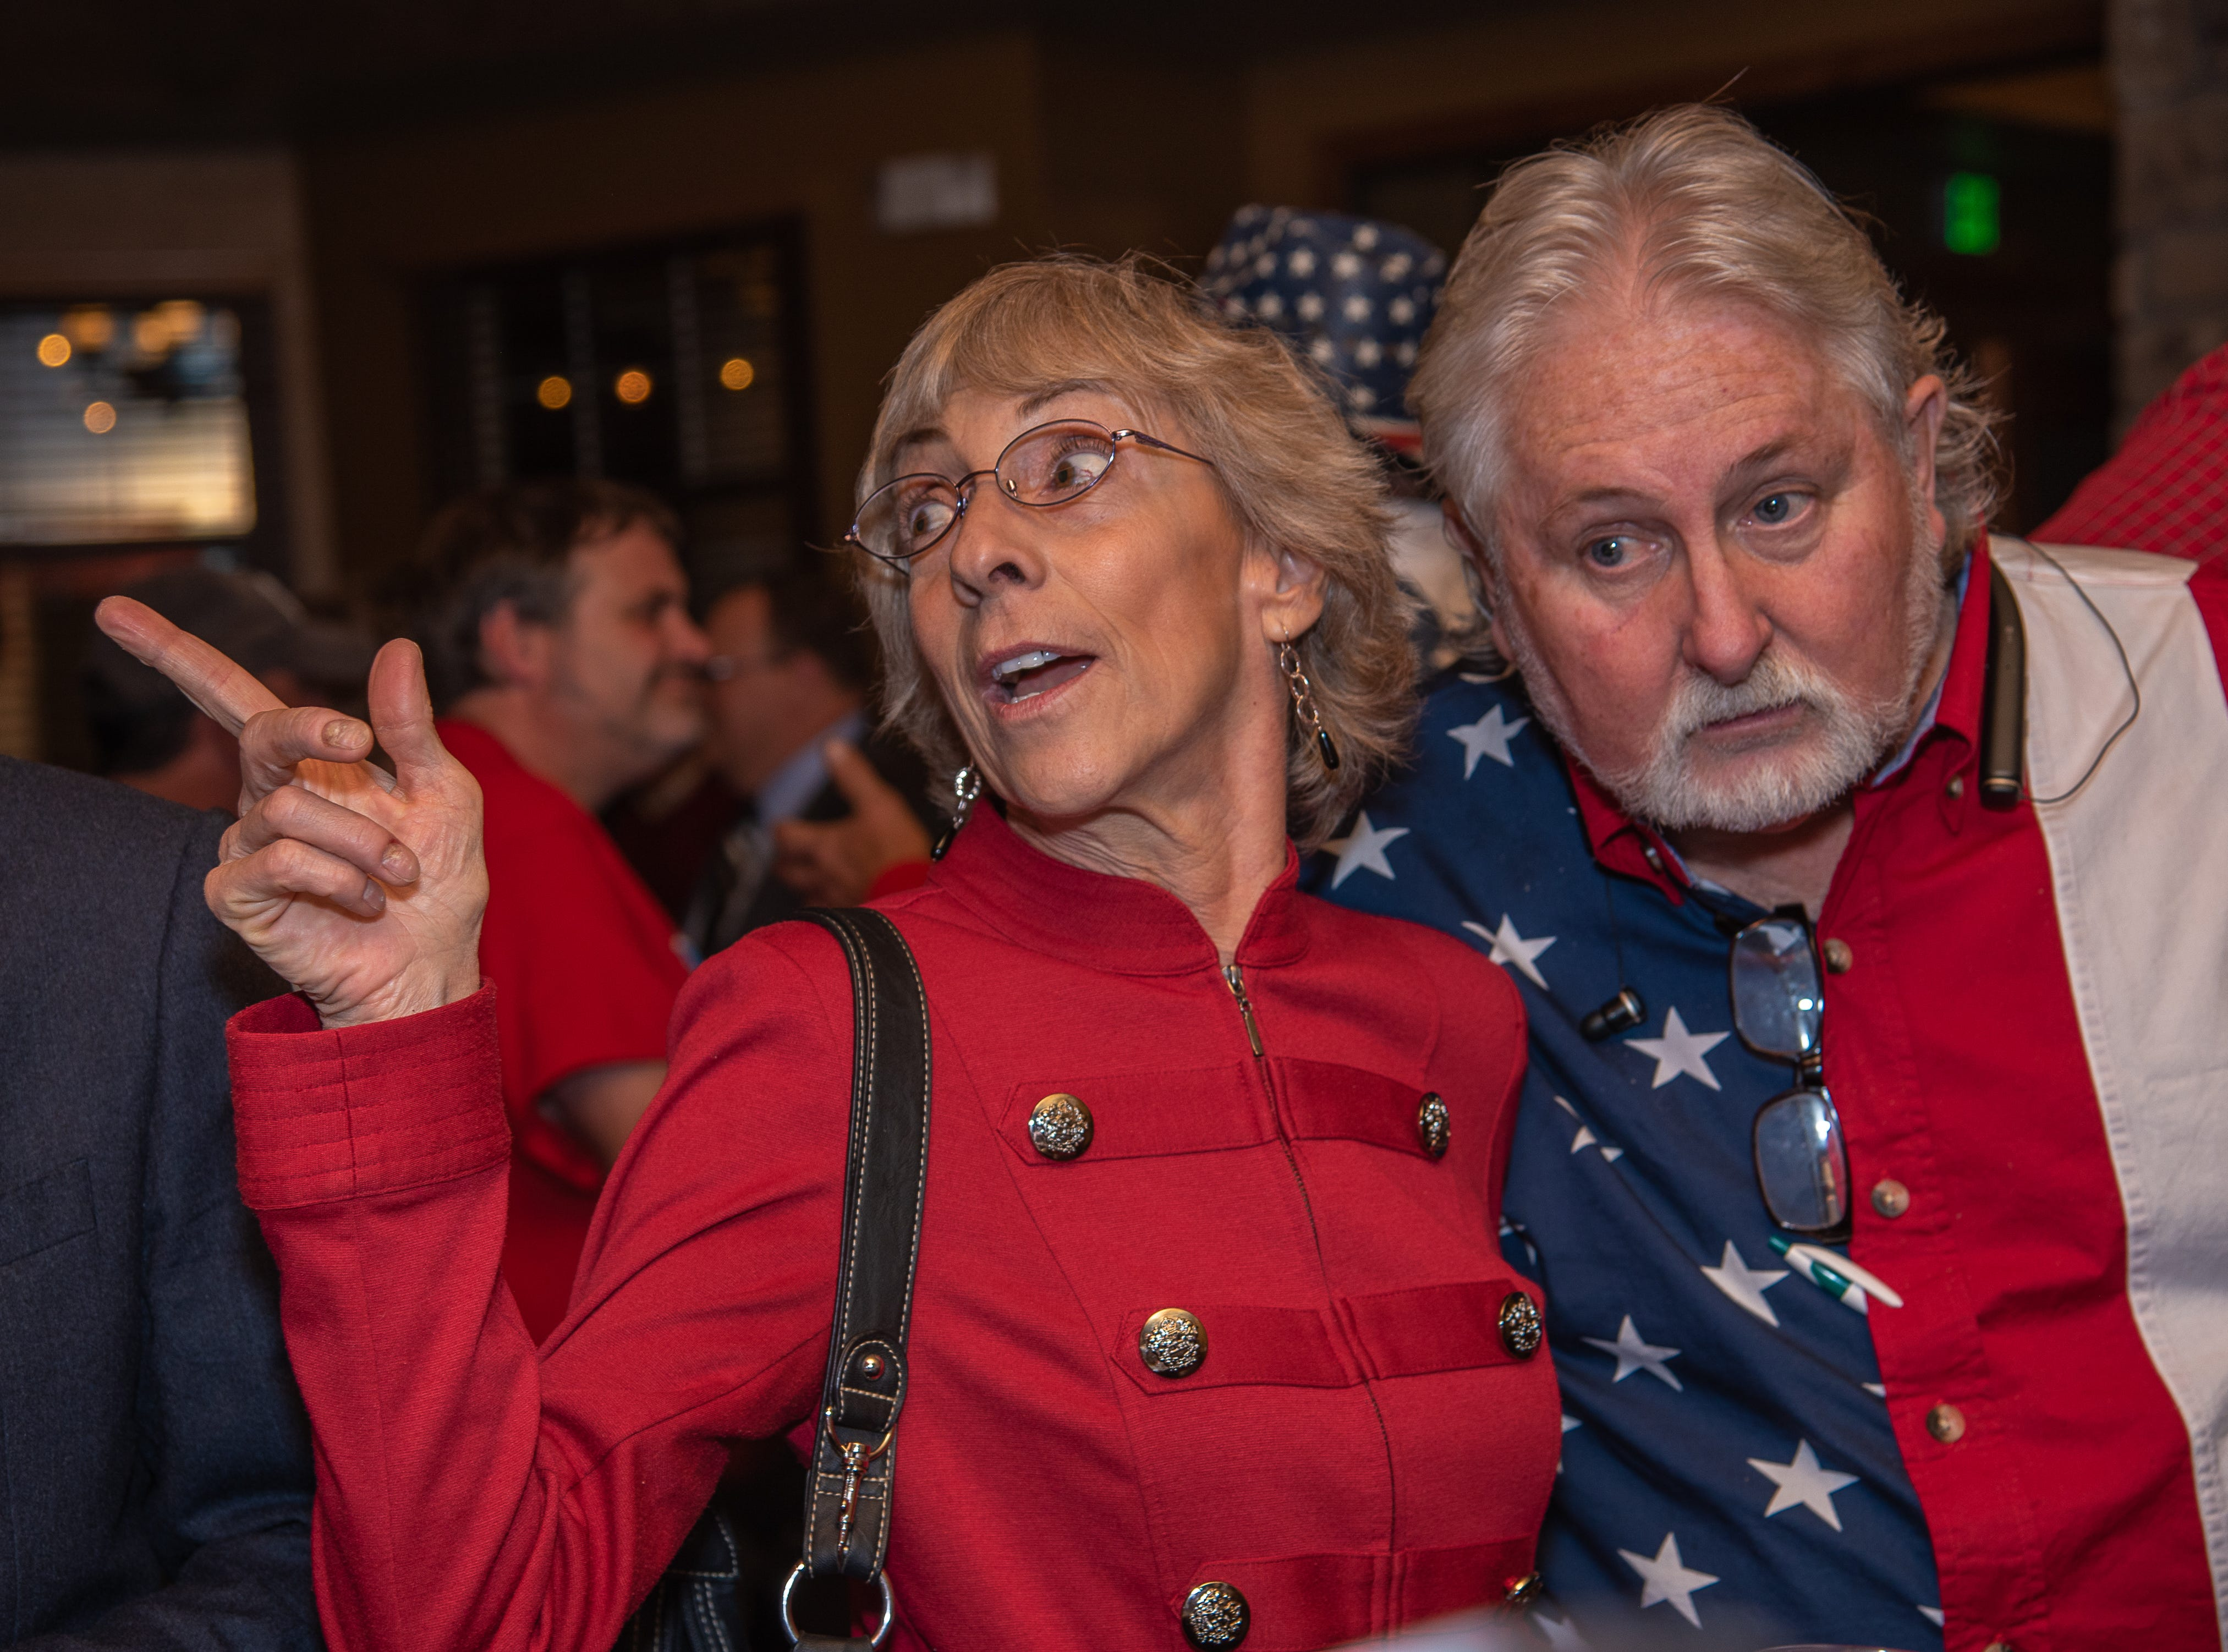 GOP House District 52 candidate Donna Walter points to election results on a screen as she hugs supporter Steve Faler at an election watch party on Tuesday, November 6, 2018, at Ptarmigan Country Club in Fort Collins, Colo.